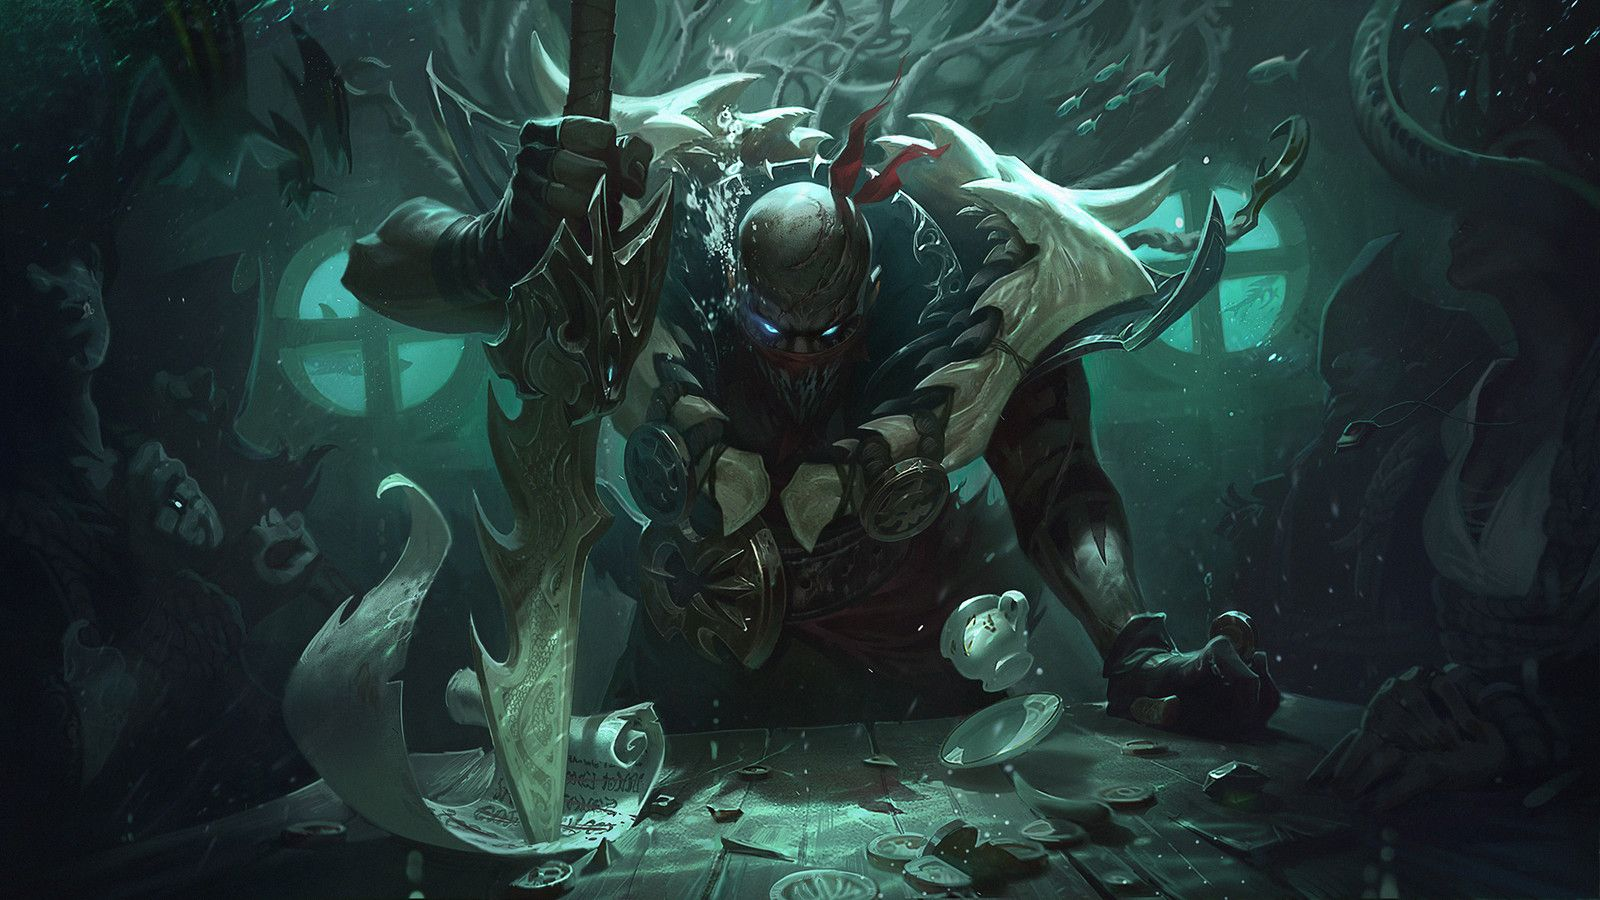 Pin By Peter On Illustration Pinterest League Of Legends League